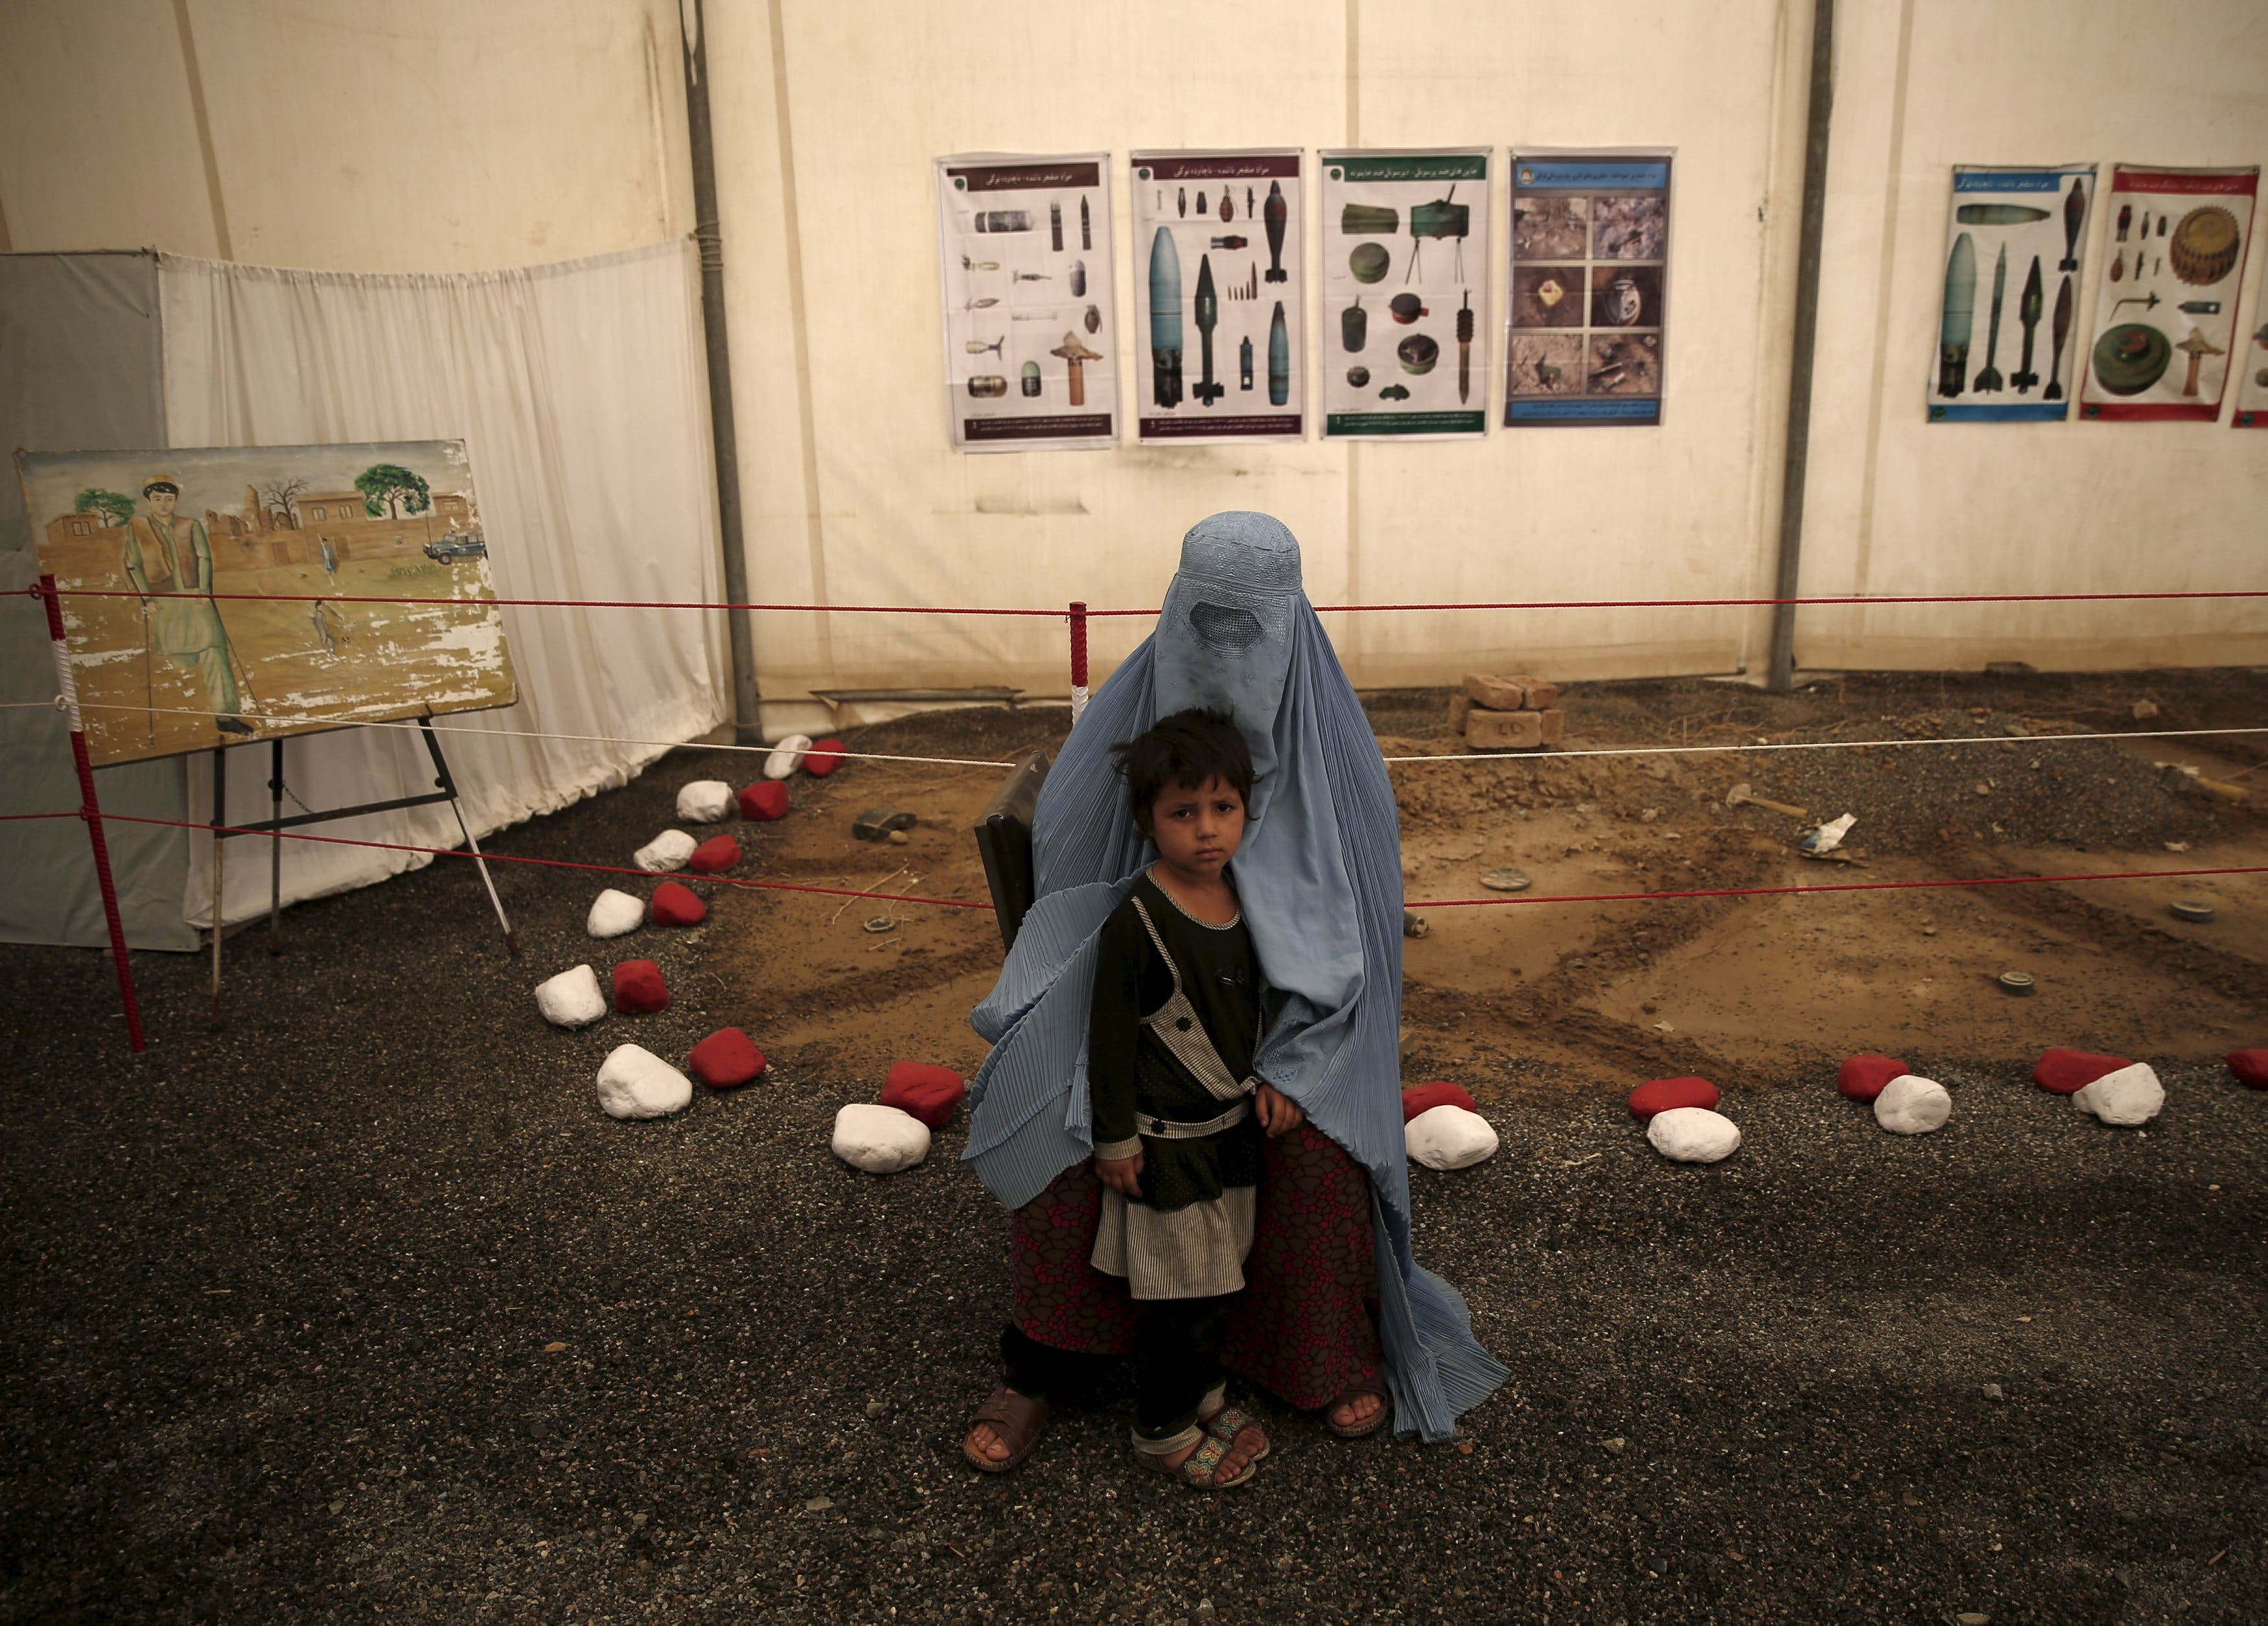 An Afghan refugee woman, clad in a burqa, sits with her child after arriving at a United Nations High Commissioner for Refugees (UNHCR) registration centre in Kabul, Afghanistan August 26, 2015.